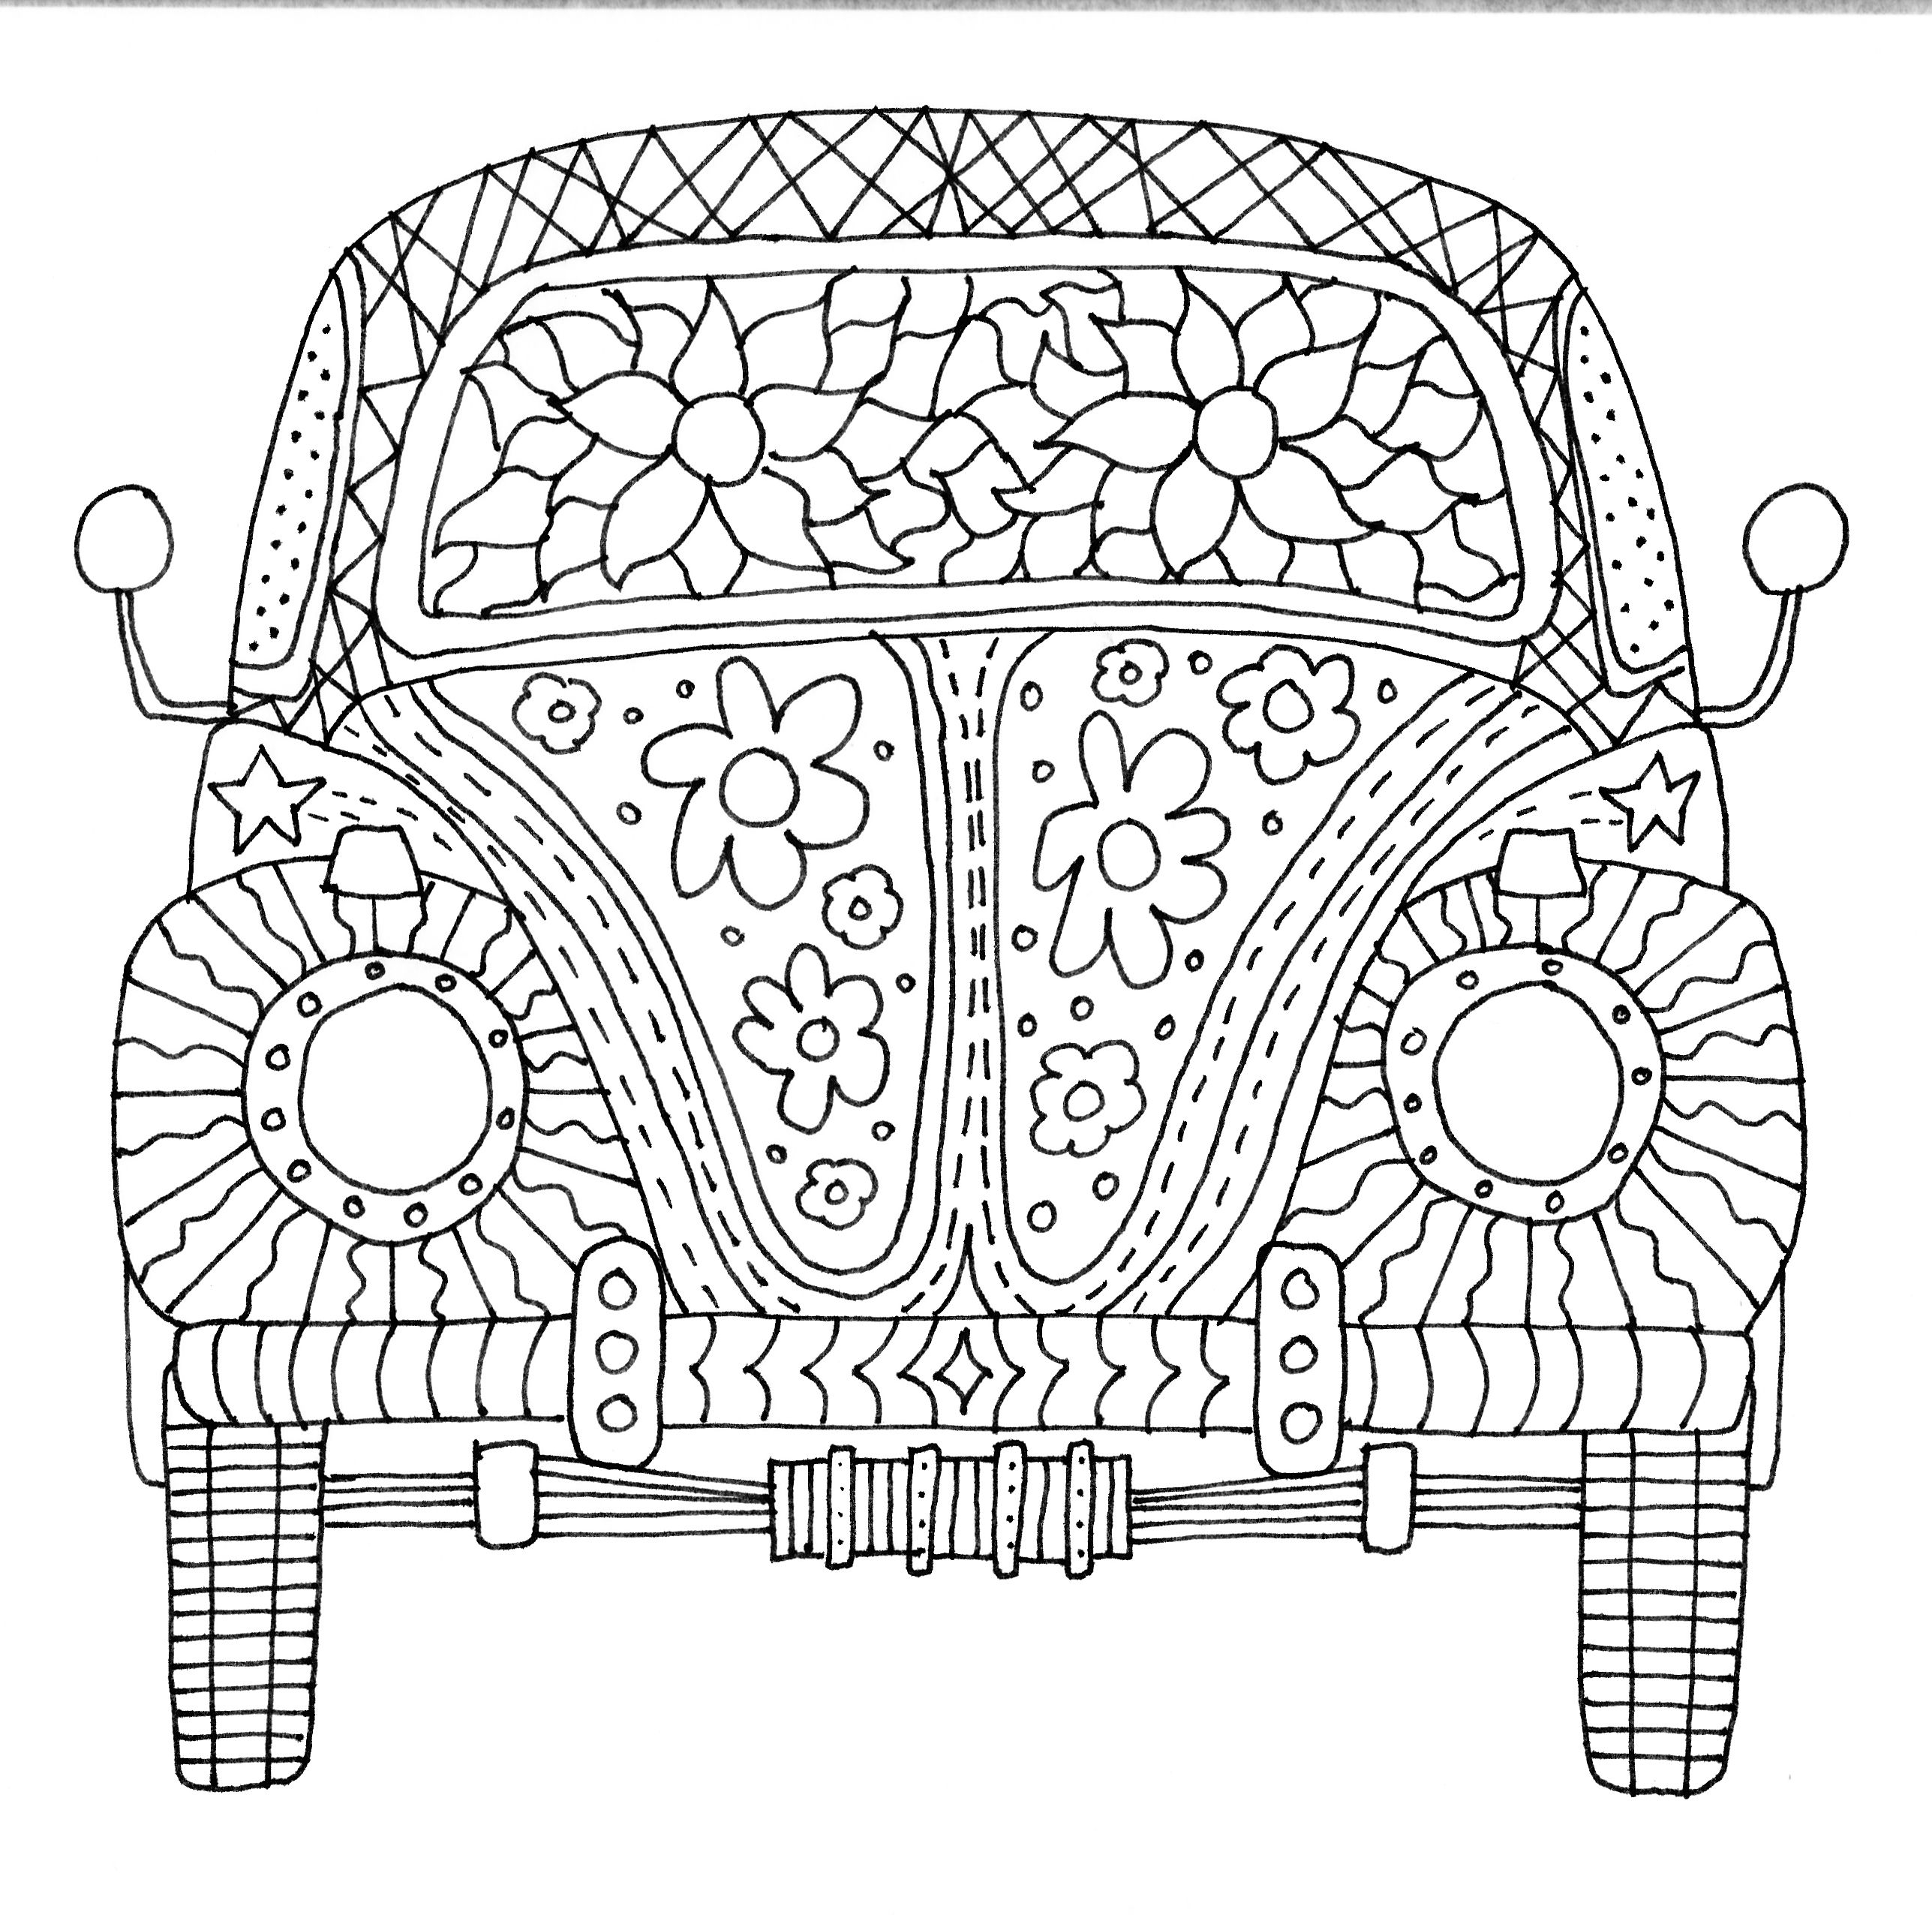 Vw Beetle Coloring Pages to Print | Free Coloring Sheets